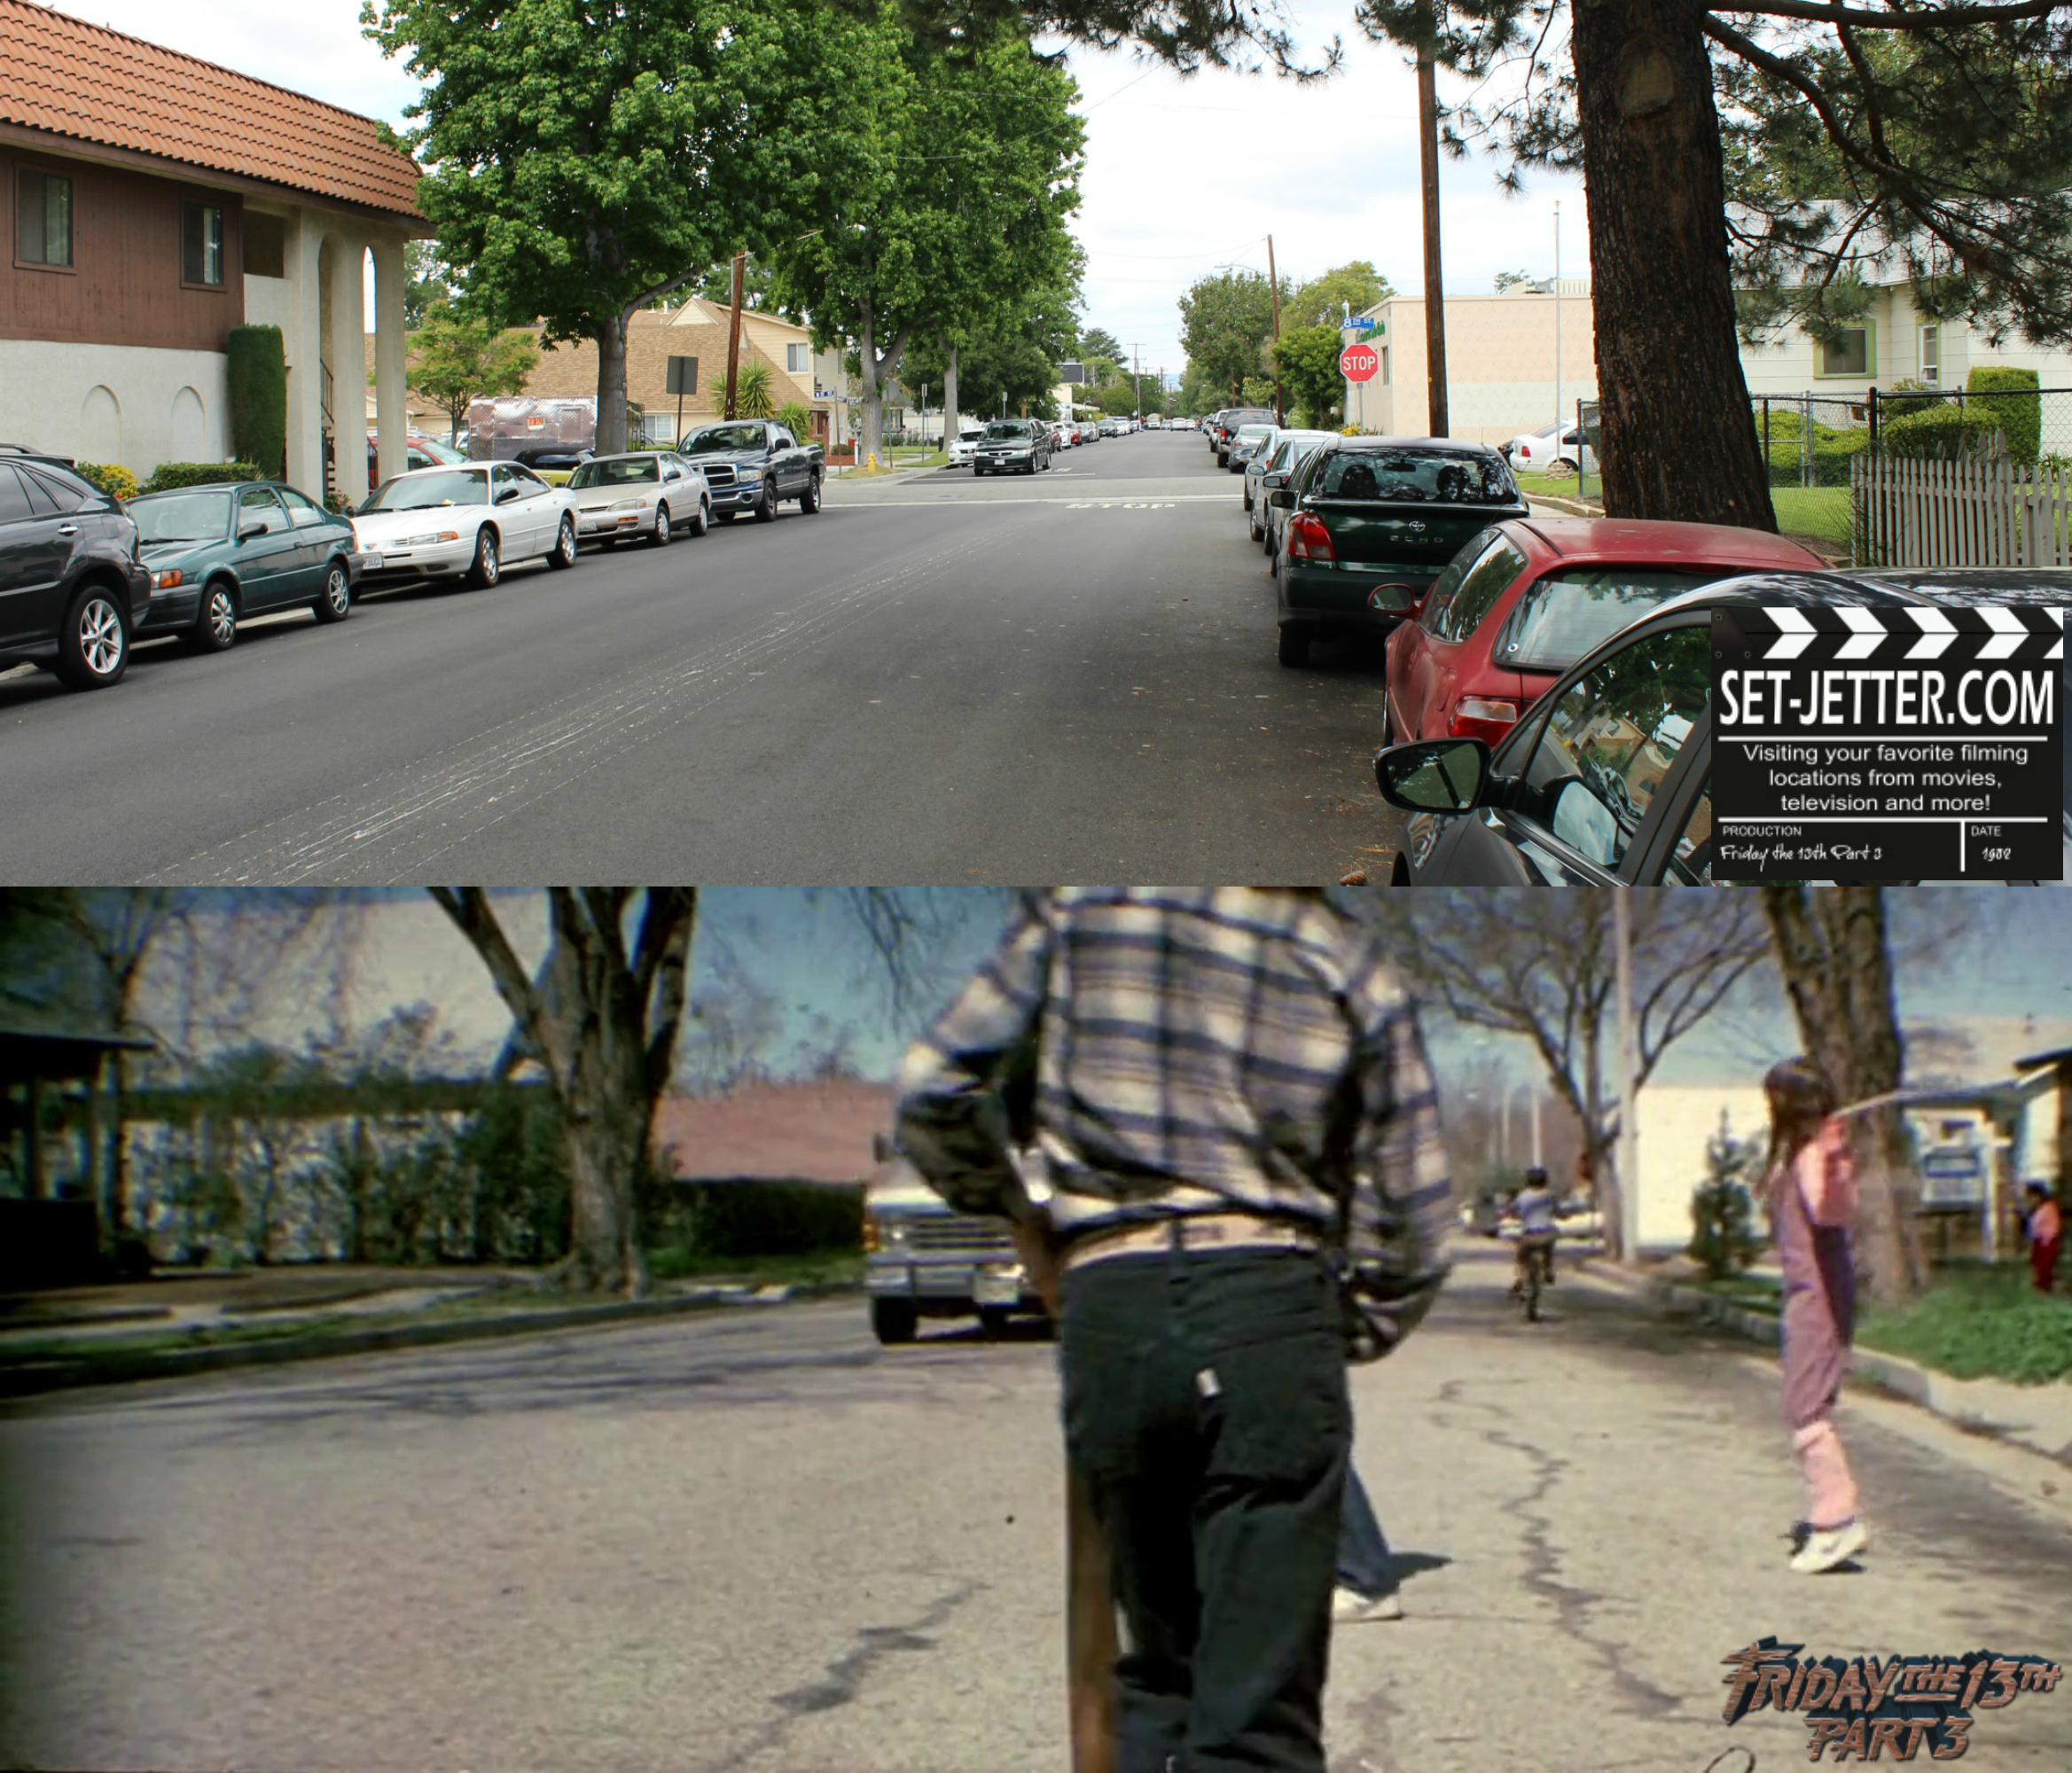 Friday the 13th Part 3 comparison 04.jpg